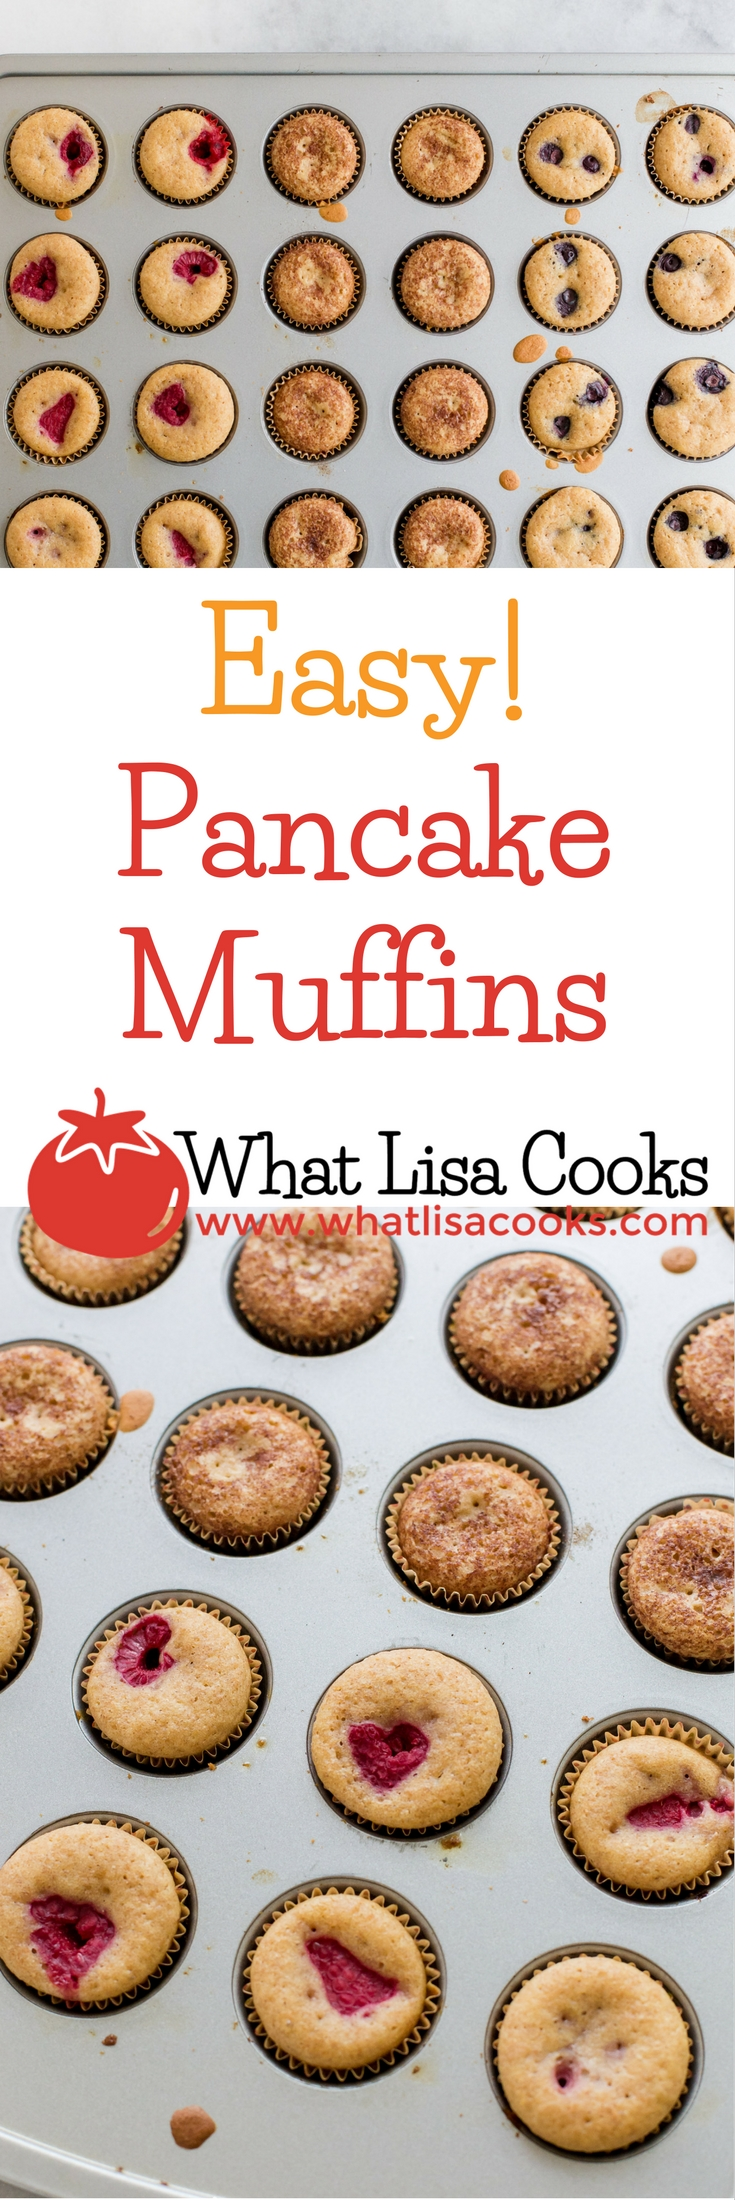 Make muffins from pancake batter! www.whatlisacooks.com